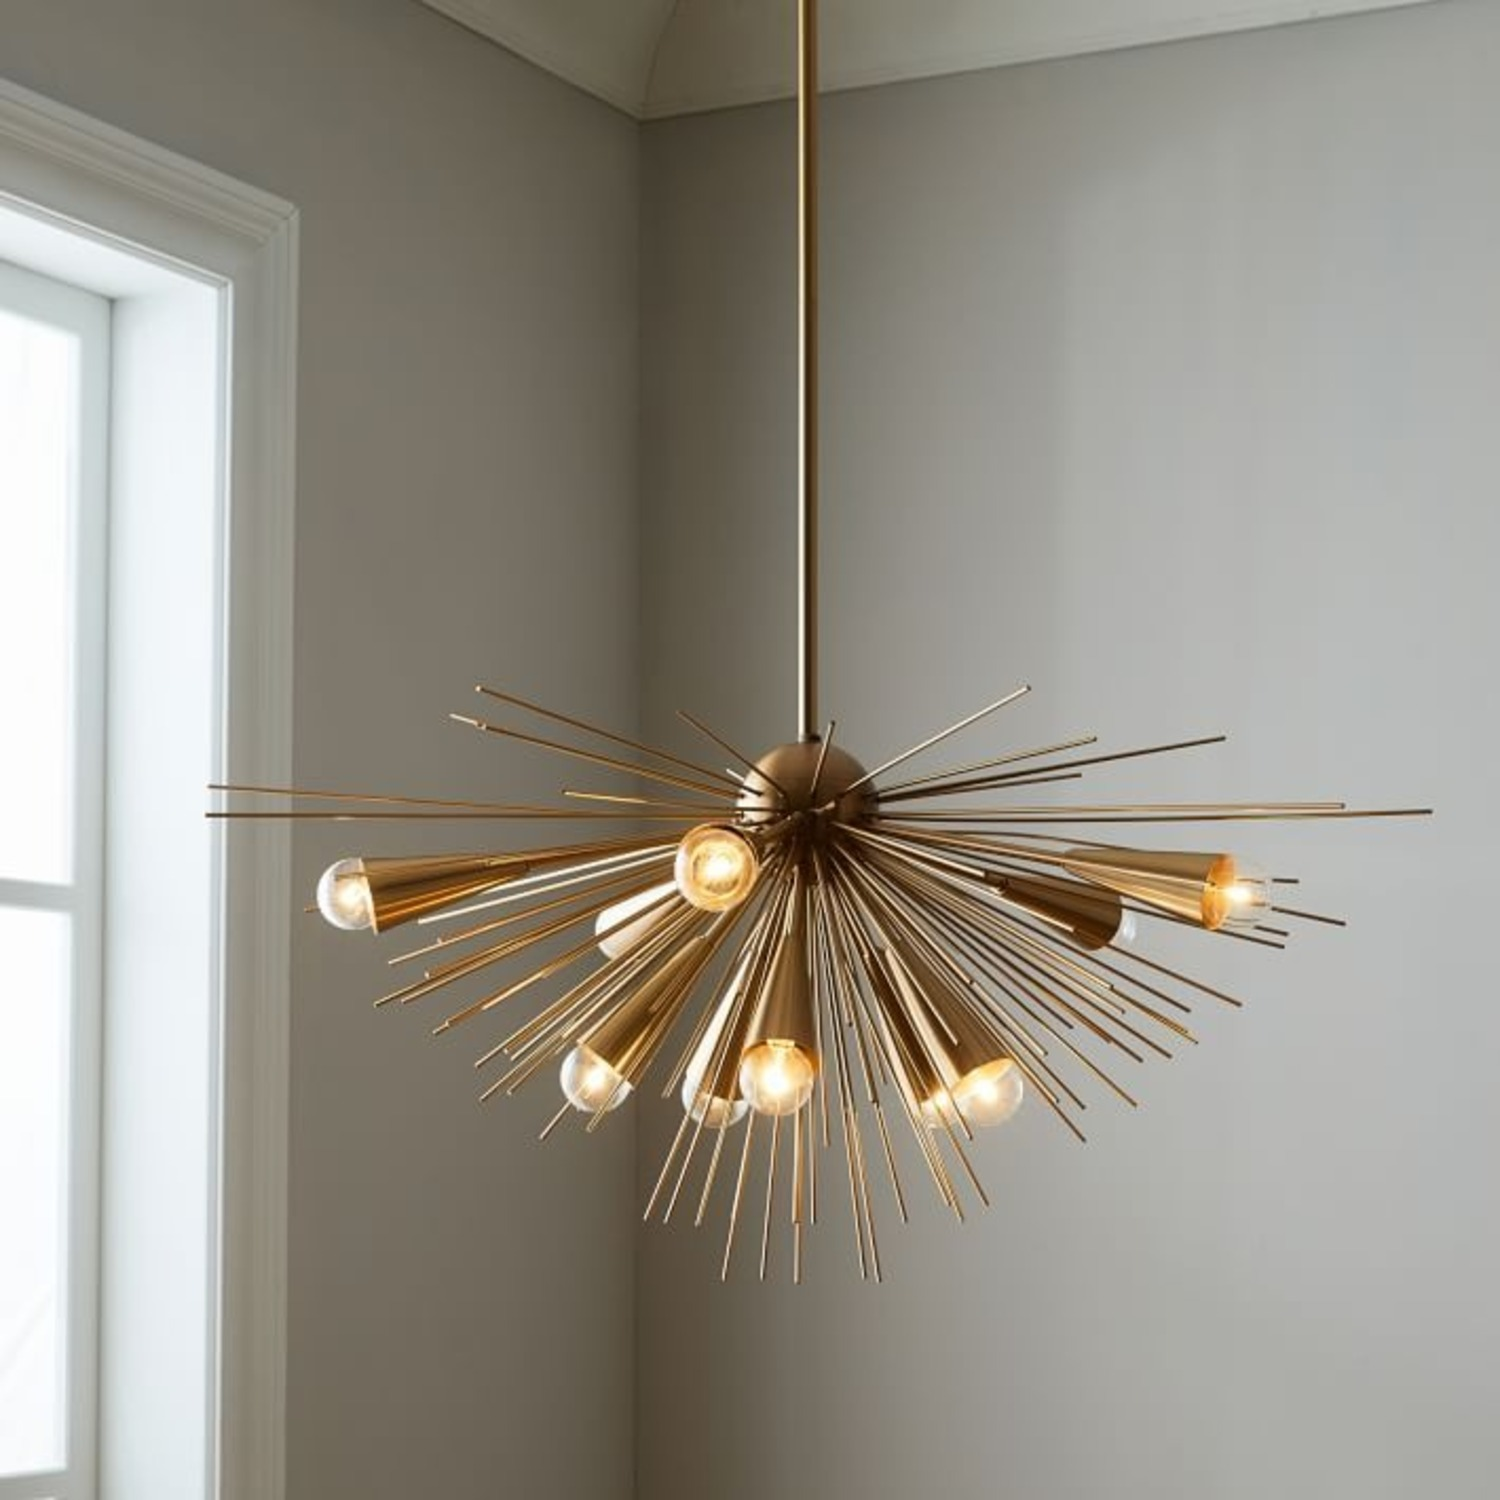 West Elm Sputnik Chandelier, Bronze/Brass - image-1